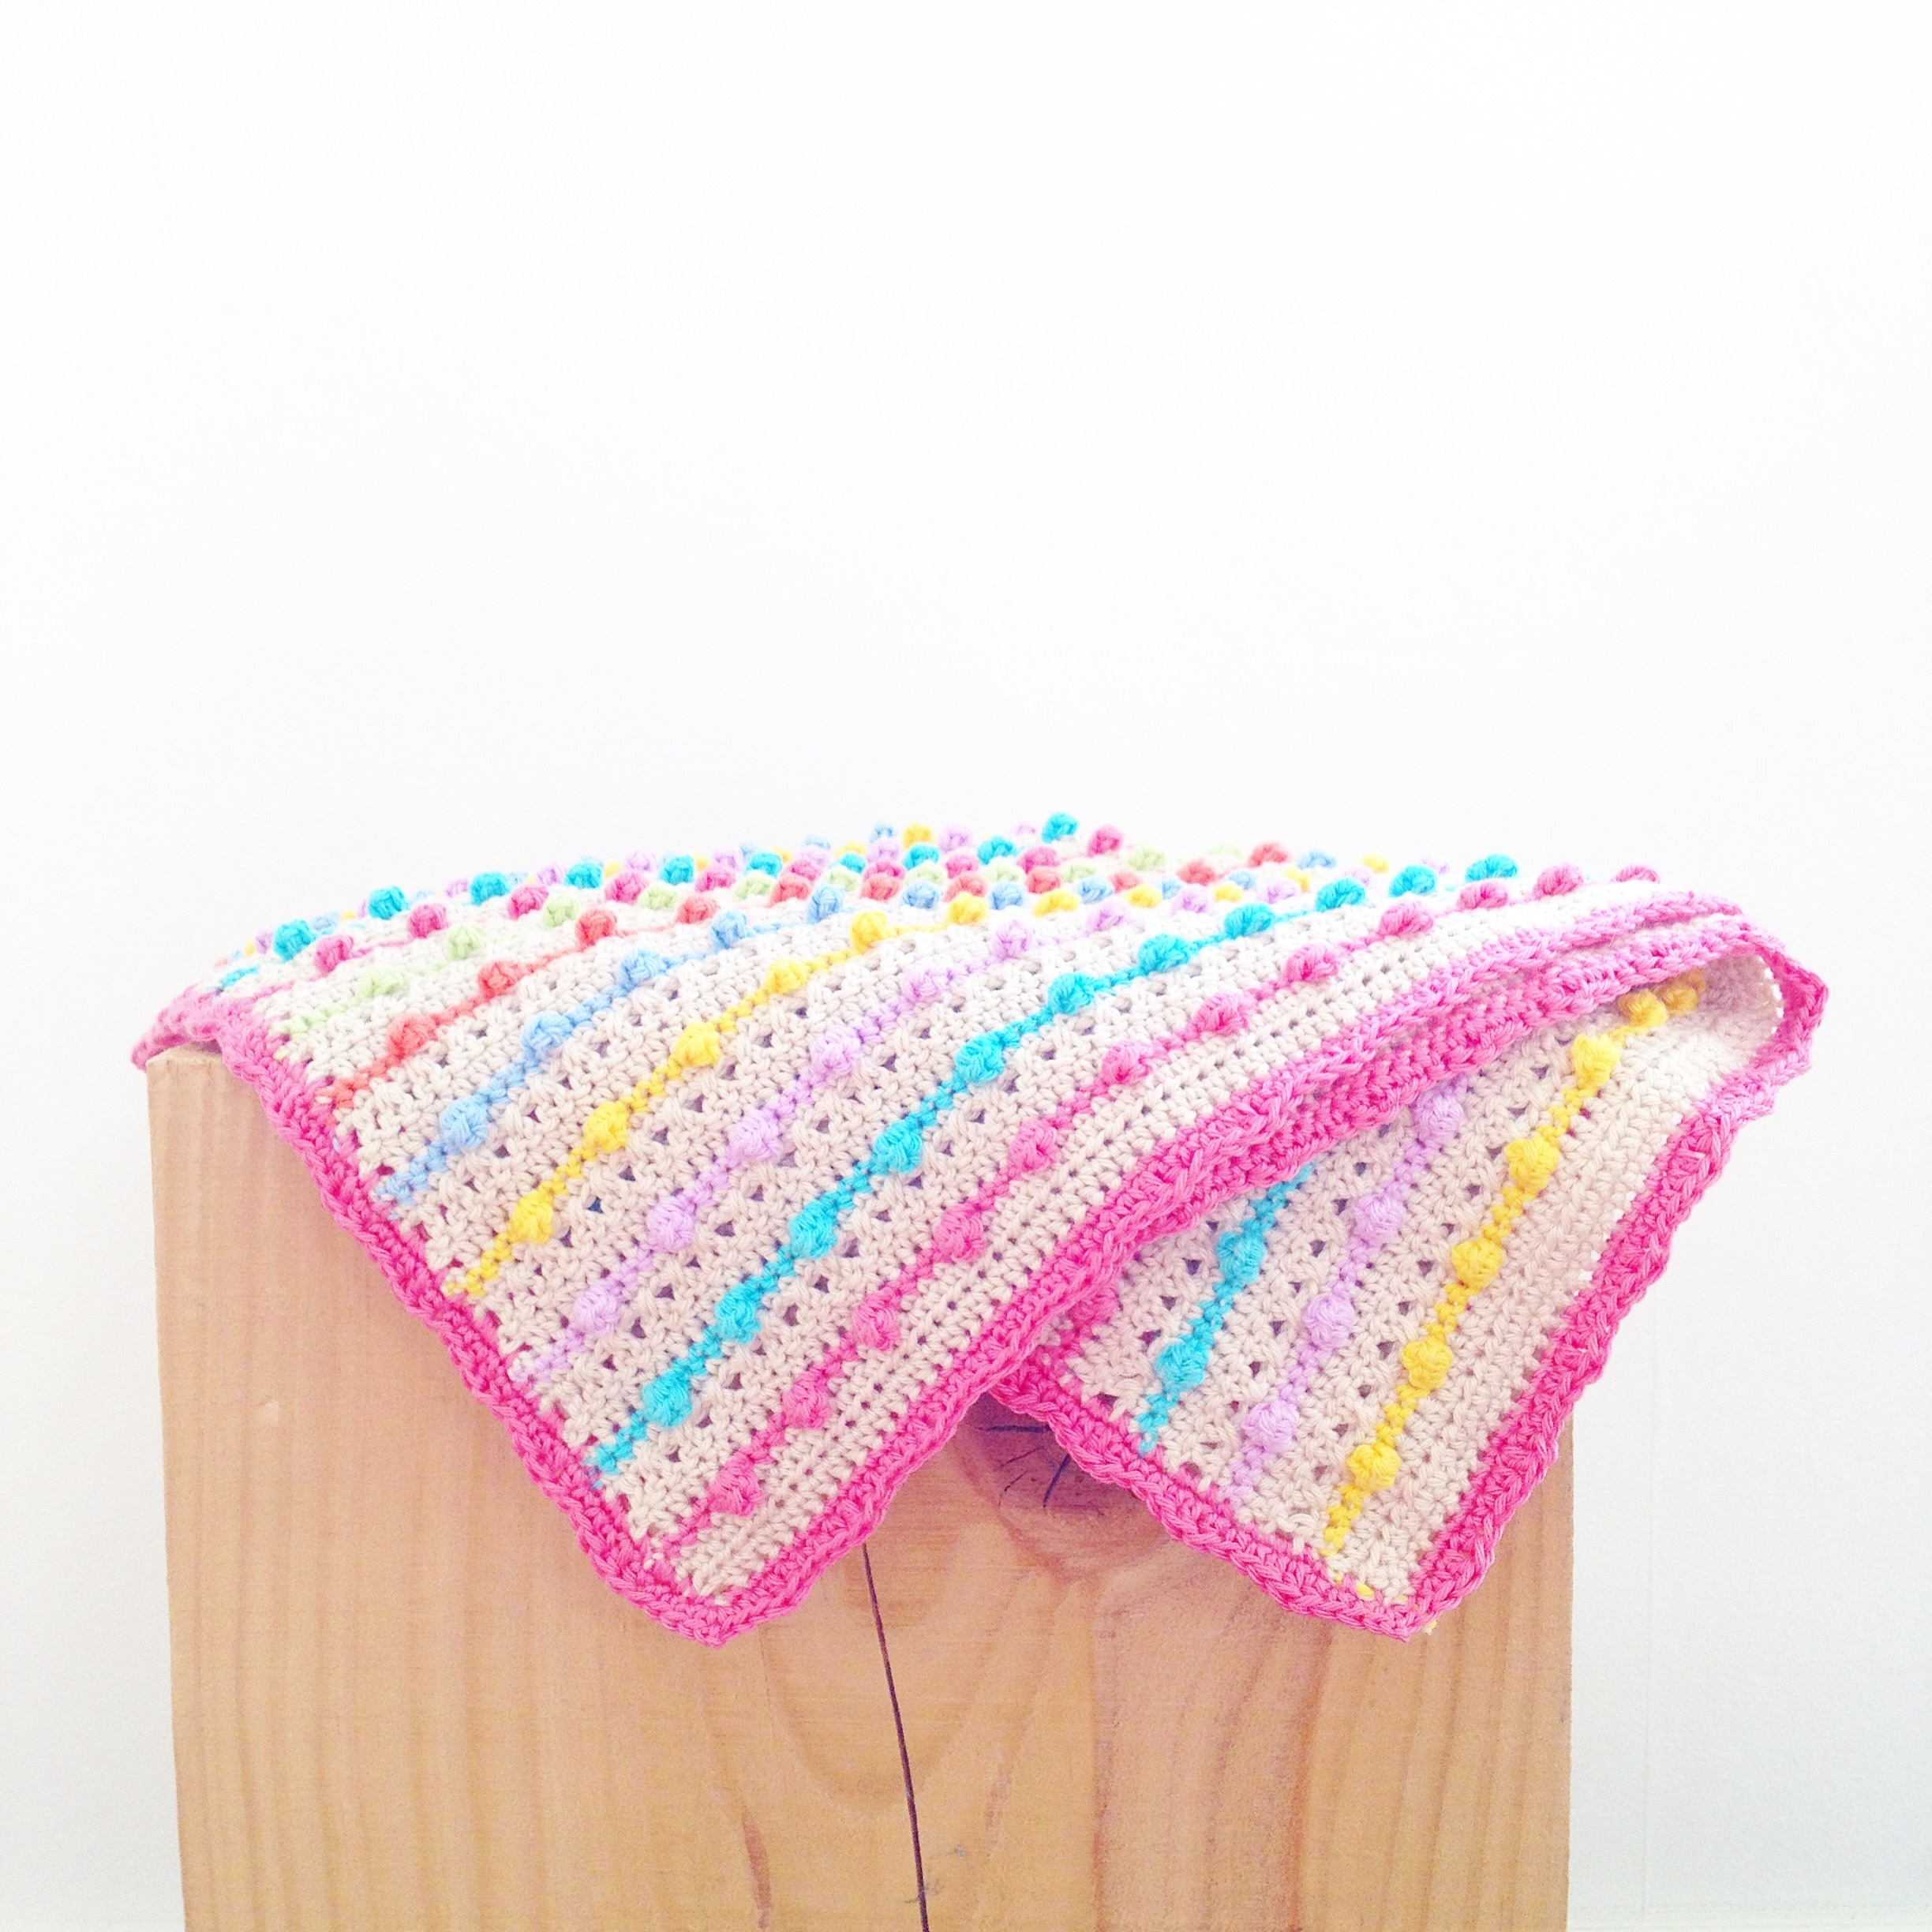 Knitting 3 Stitch Bobble : Bobble Stitch Blanket crochet project by Annemarie LoveKnitting